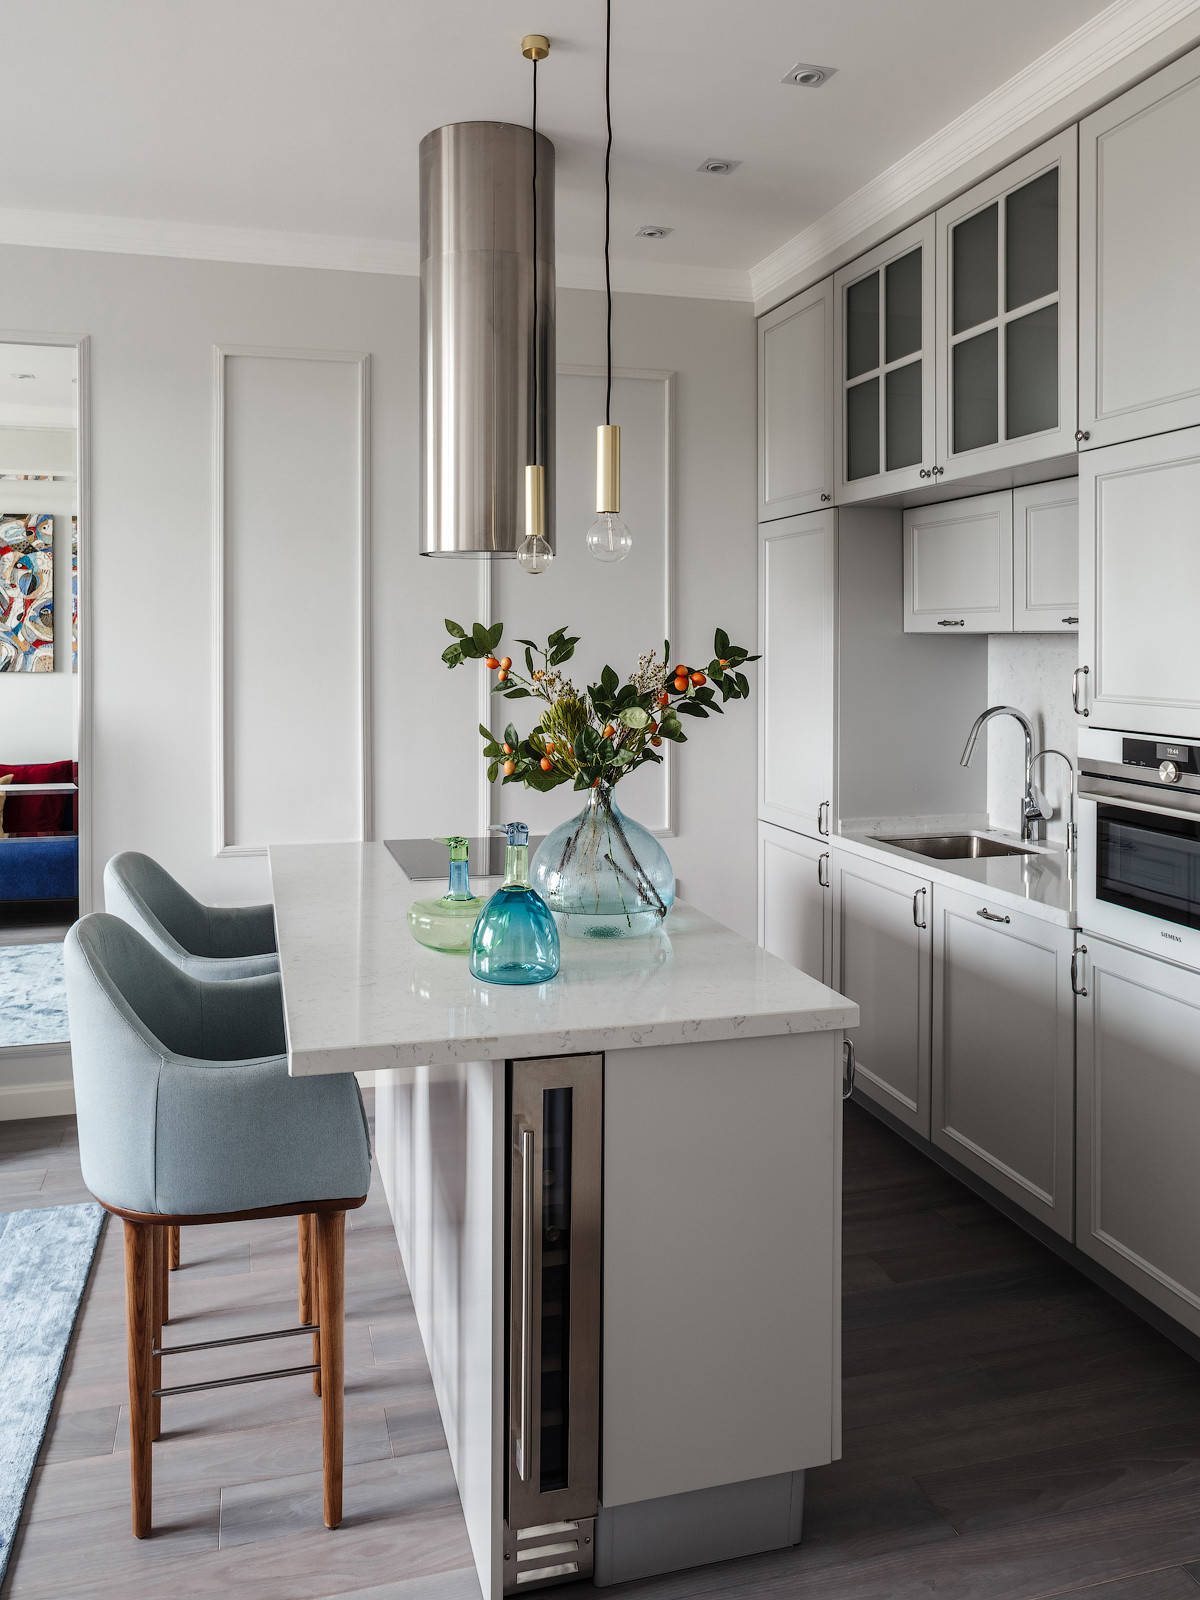 75 Beautiful Small Kitchen With Gray Cabinets Pictures Ideas January 2021 Houzz